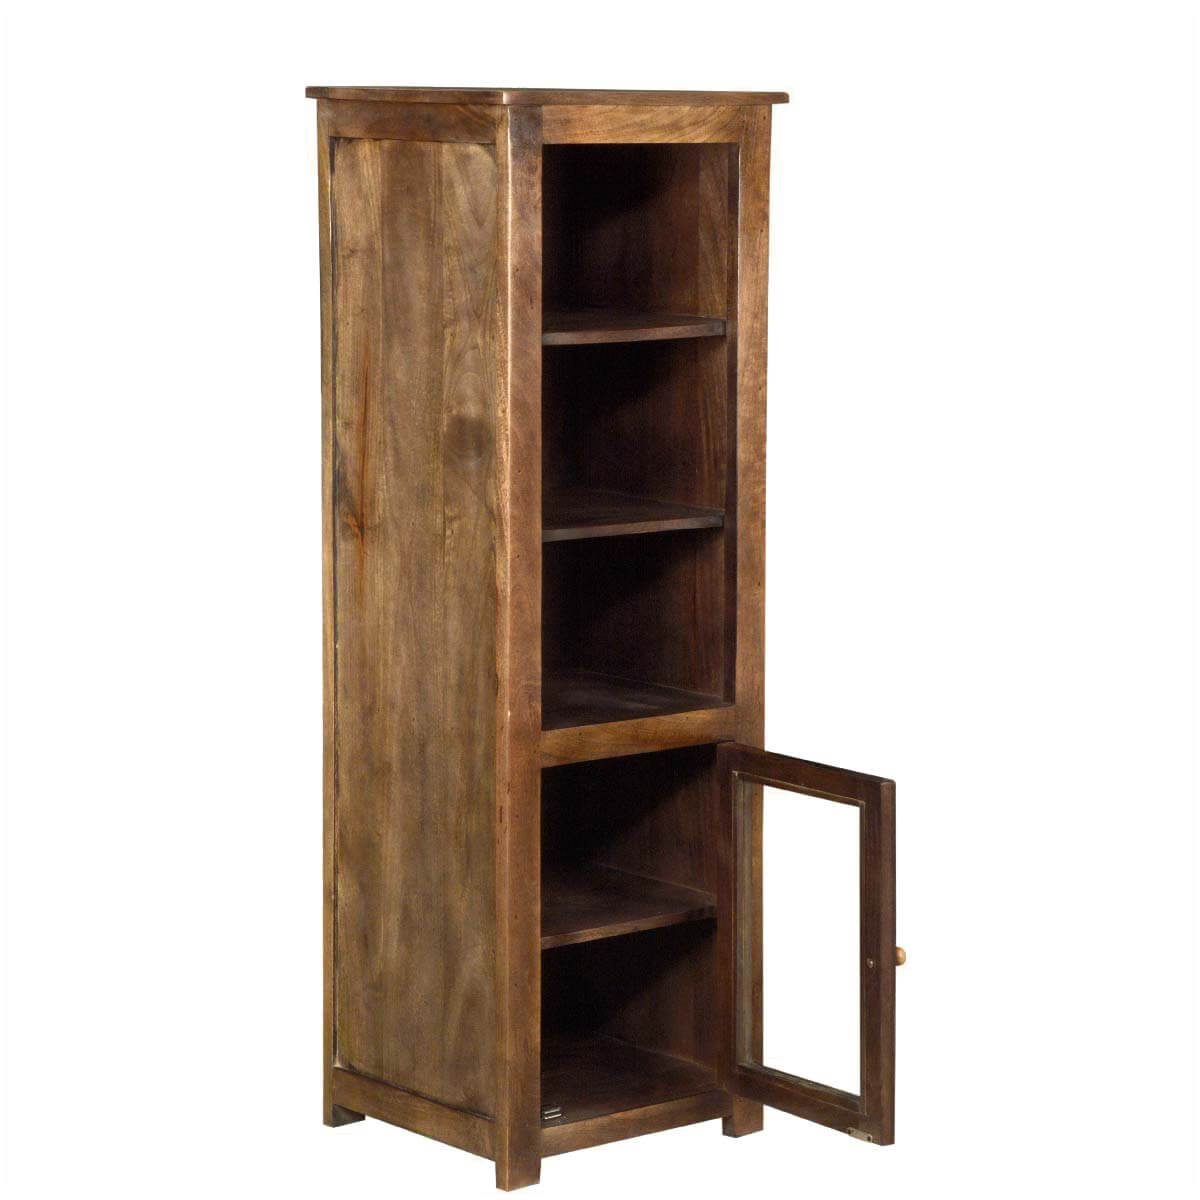 Timeless Solid Hardwood Mission Storage Tower Cabinet